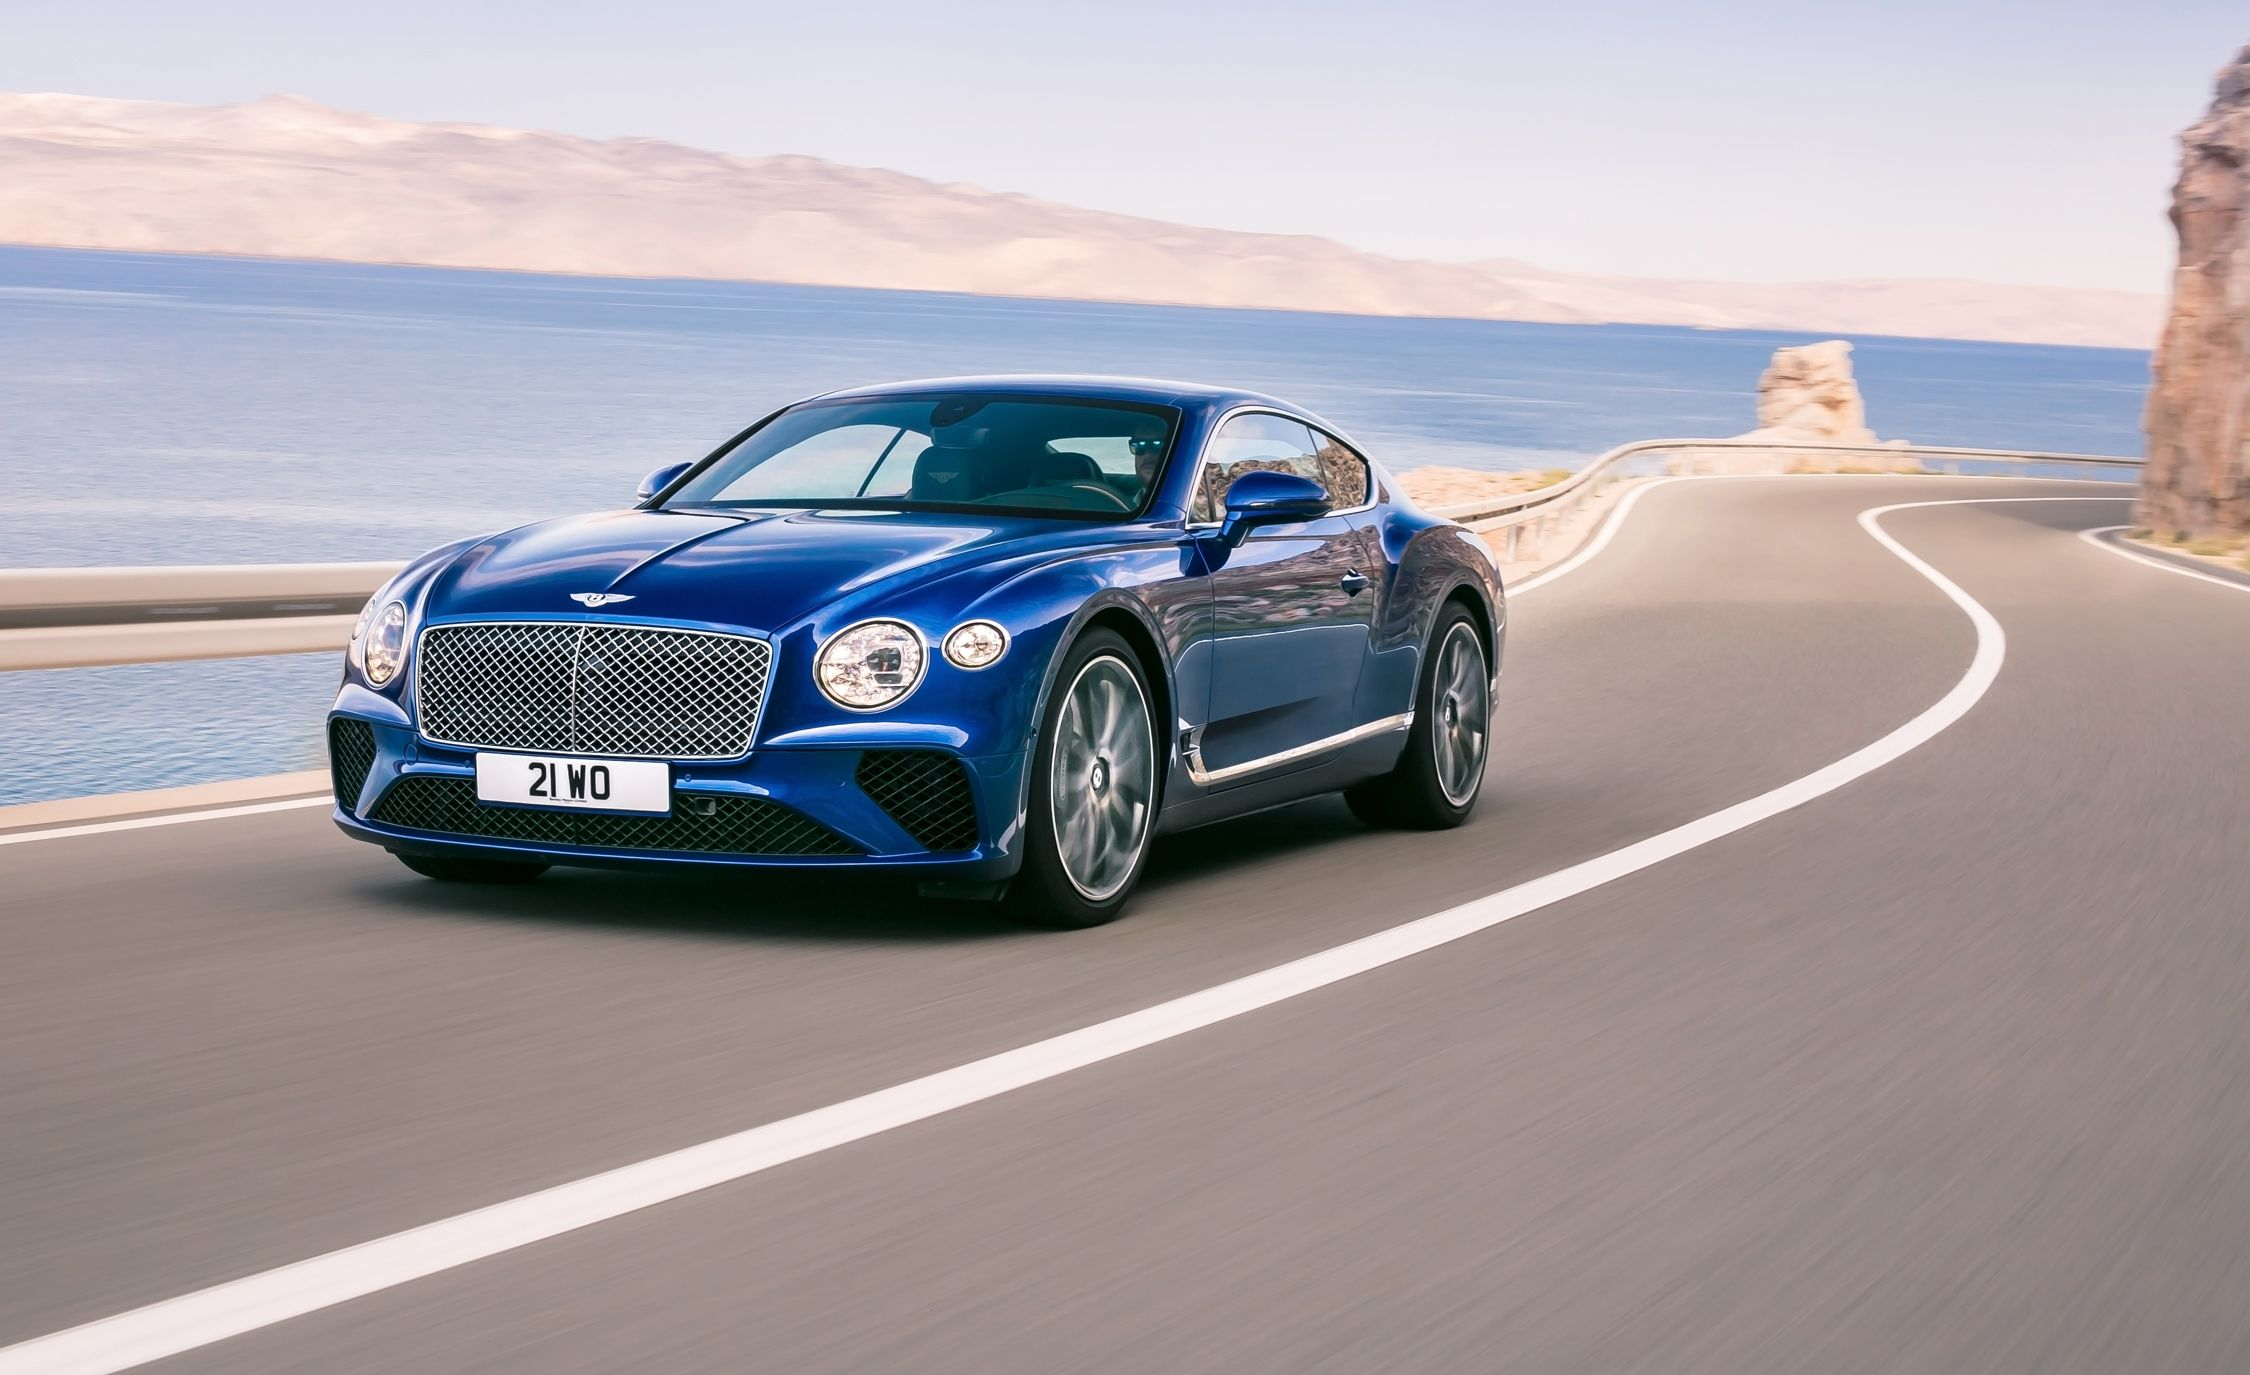 2019 Bentley Continental GT: Going Ballistic